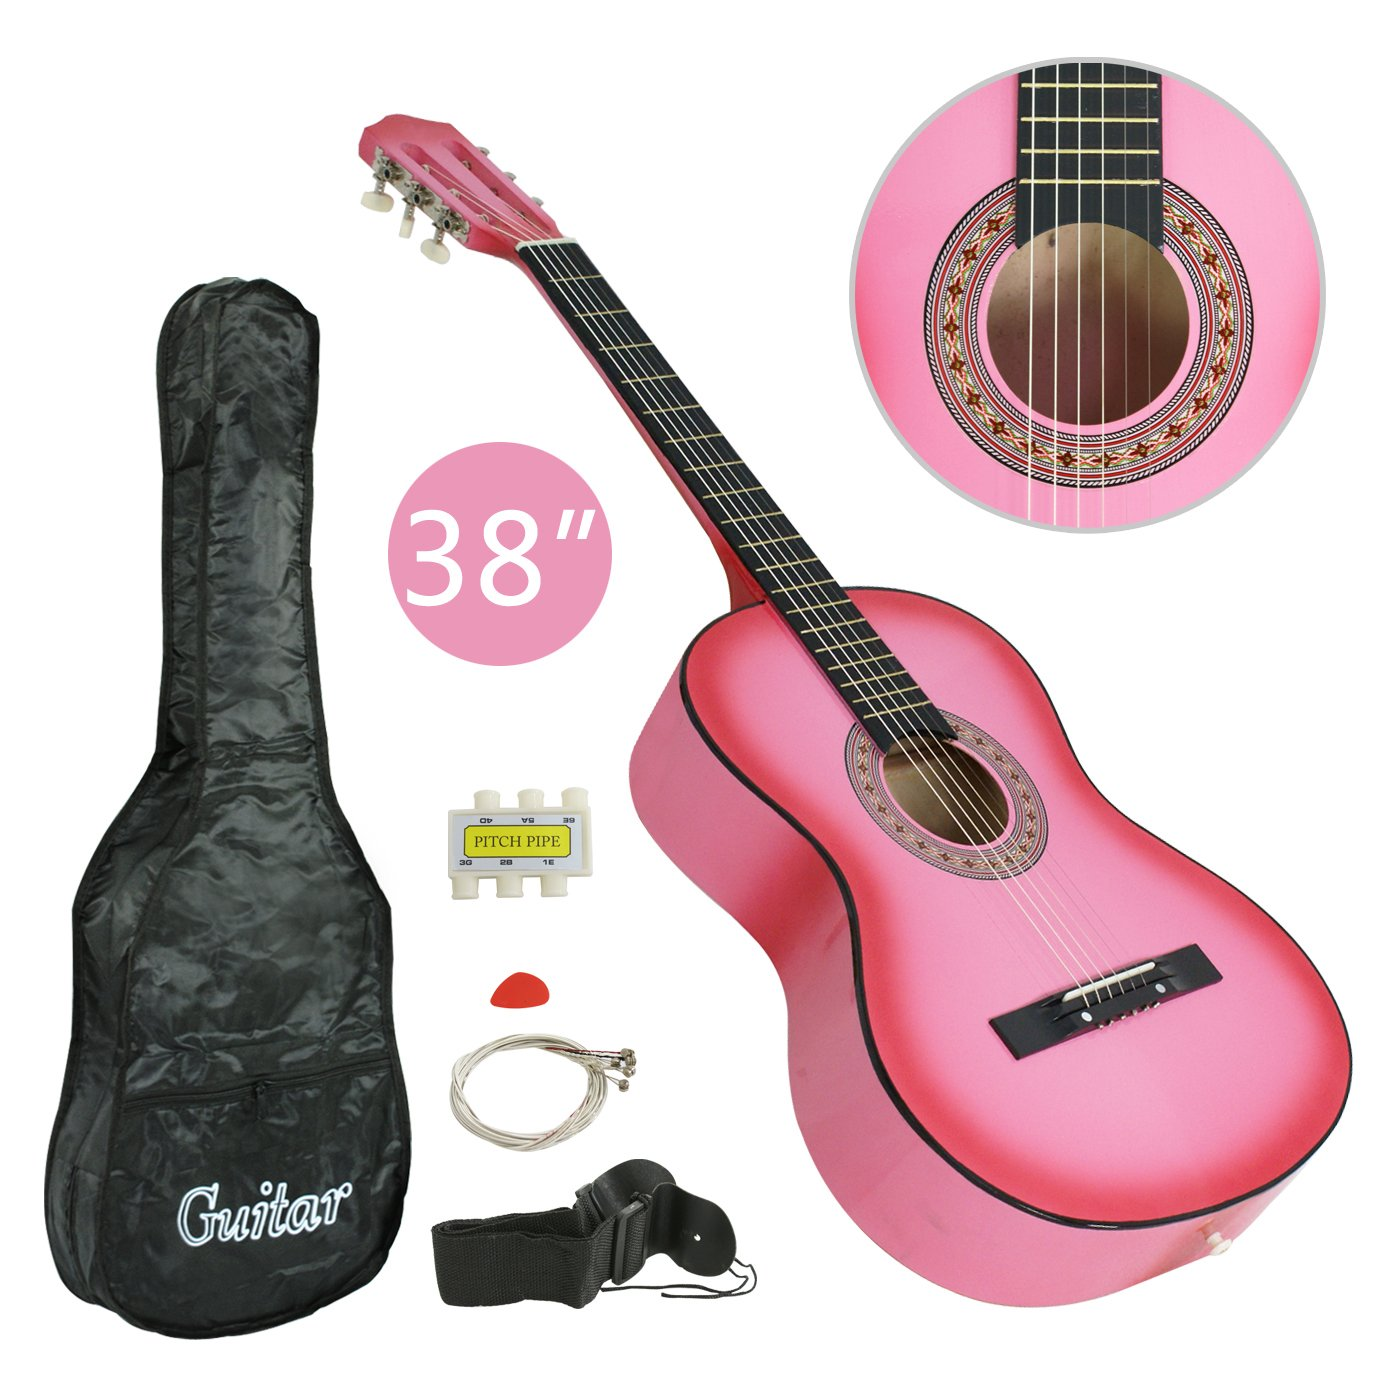 Smartxchoices 38 inch Natural 6-Steel Strings Acoustic Guitar for Beginners Music Lovers Kids with Guitar Bag, Strap, Extra Set of Strings and Pick Starter (Natural)